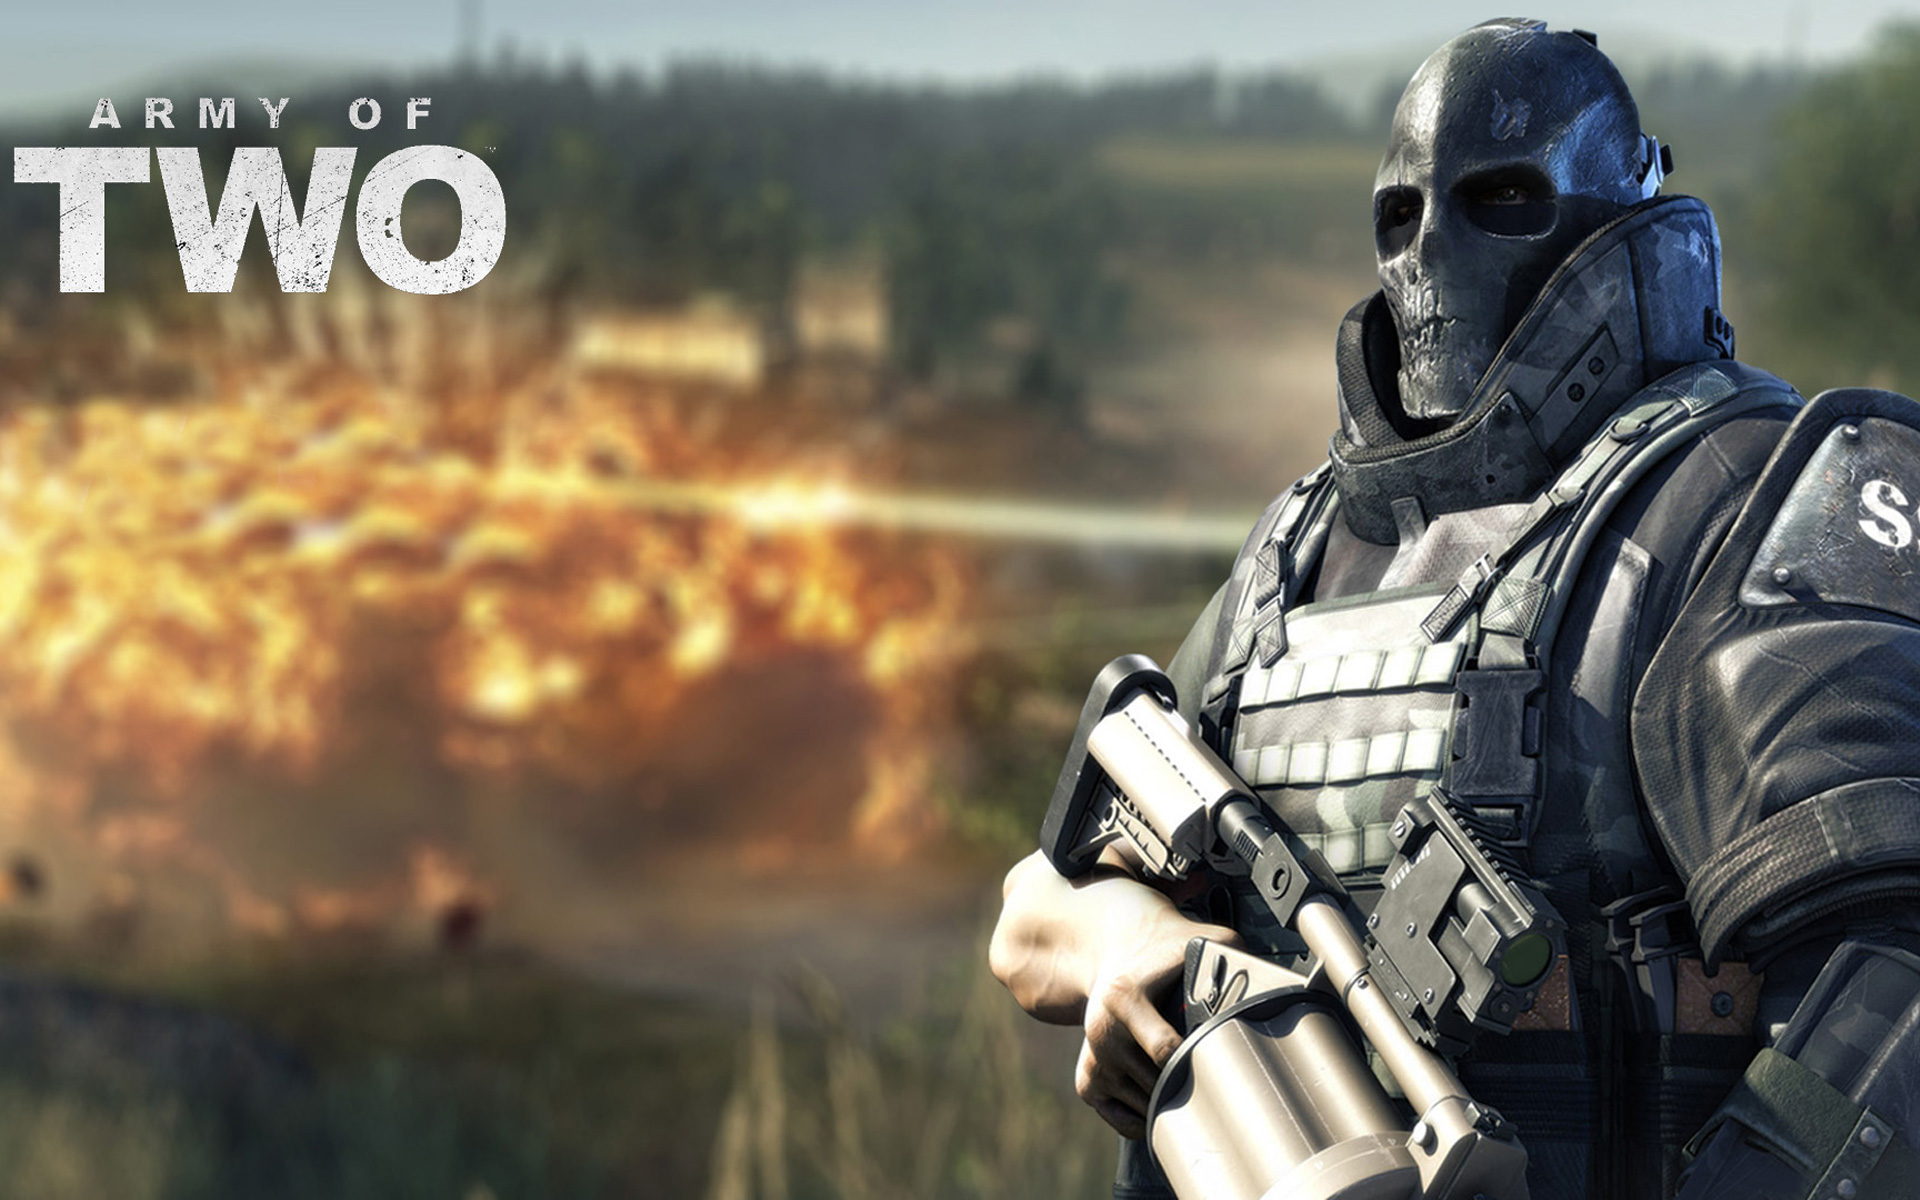 Army Of Two Computer Wallpapers, Desktop Backgrounds